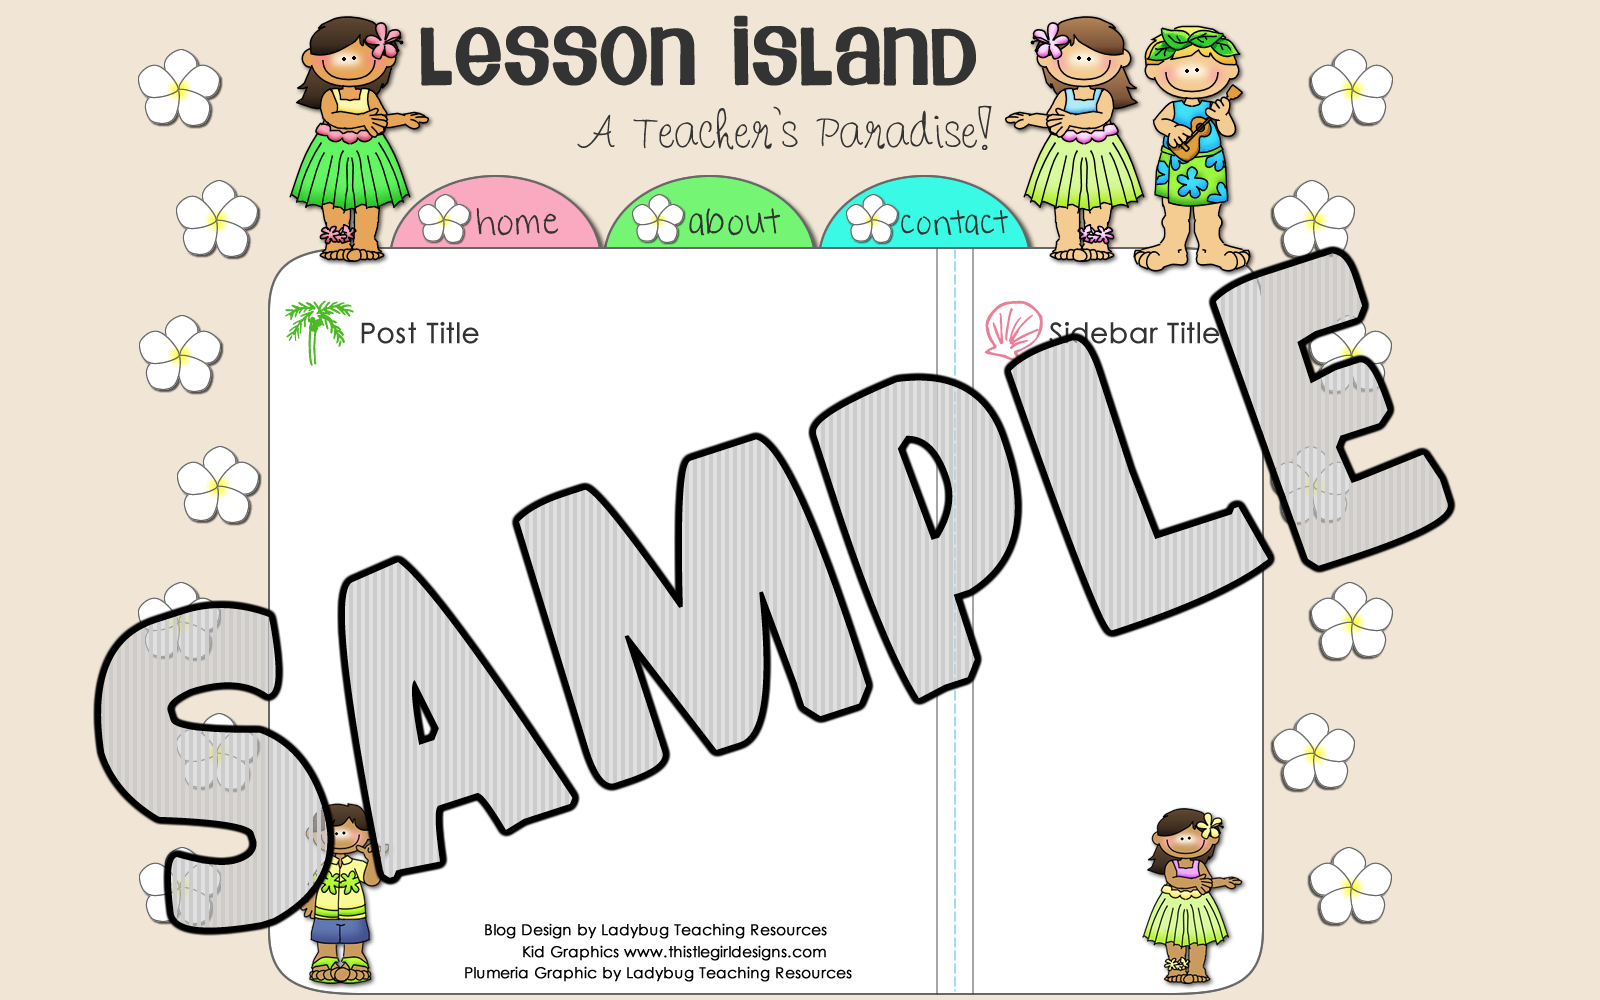 Ladybug Teaching Resources: New Premade Template: Lesson Island